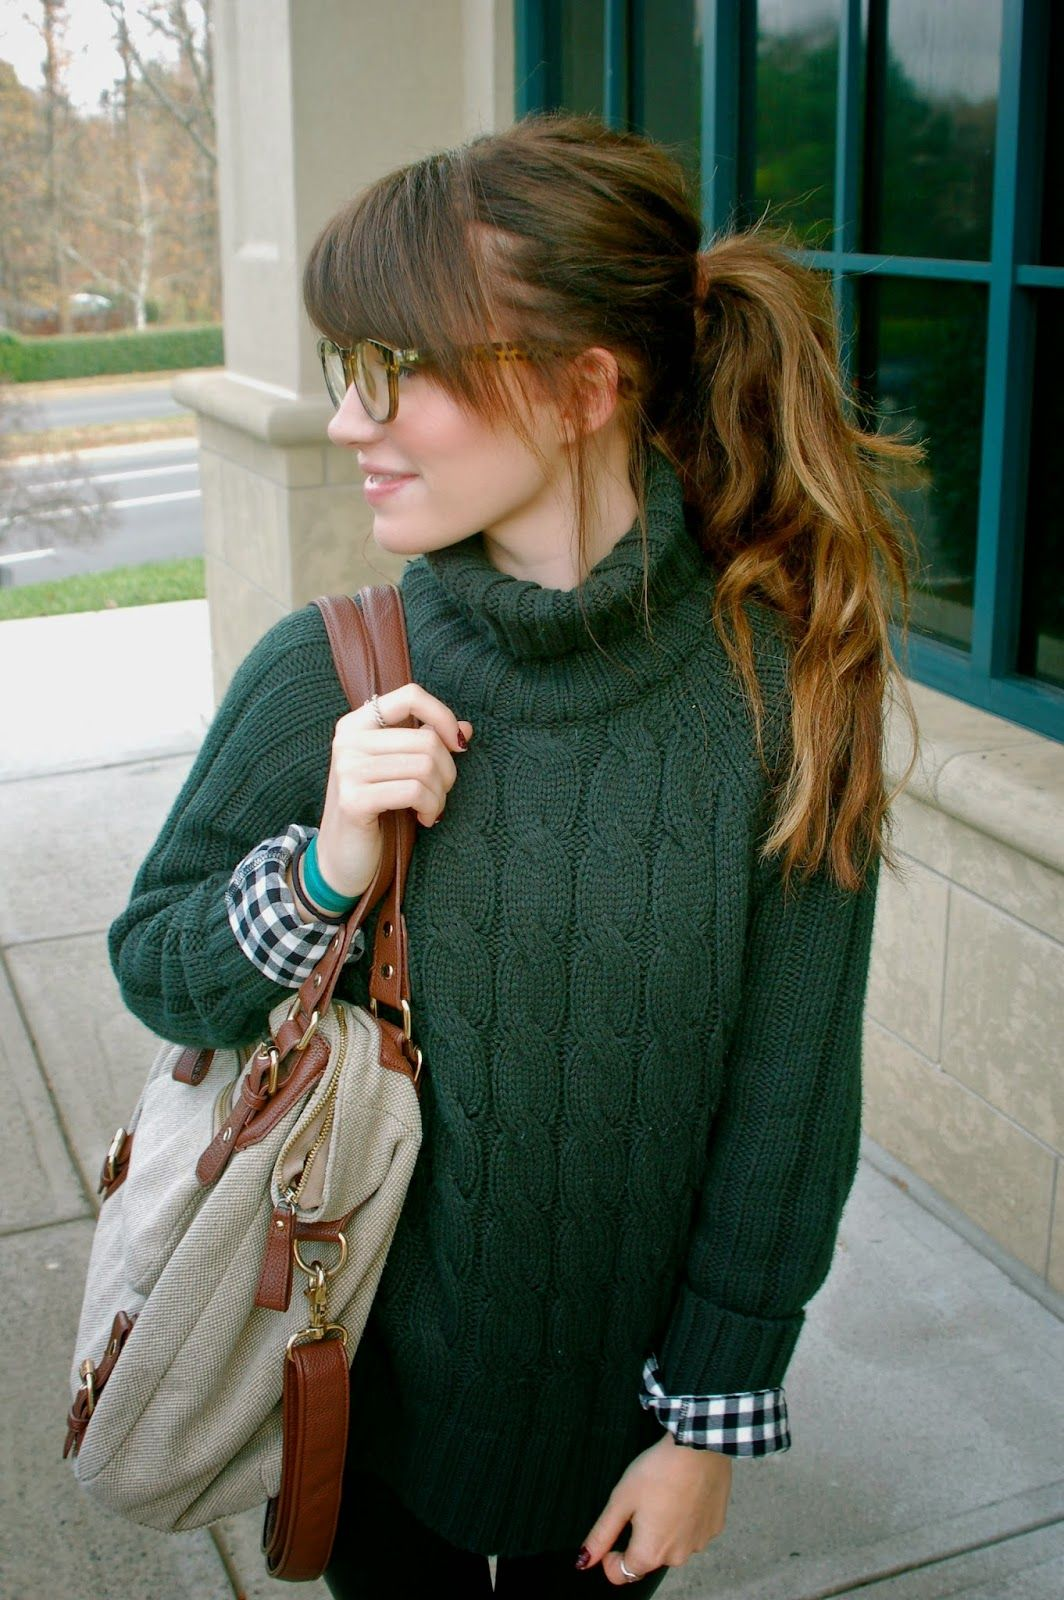 Superb Turtle Neck The Turtle Neck Climbs The Neck And Stands Hign Short Hairstyles Gunalazisus